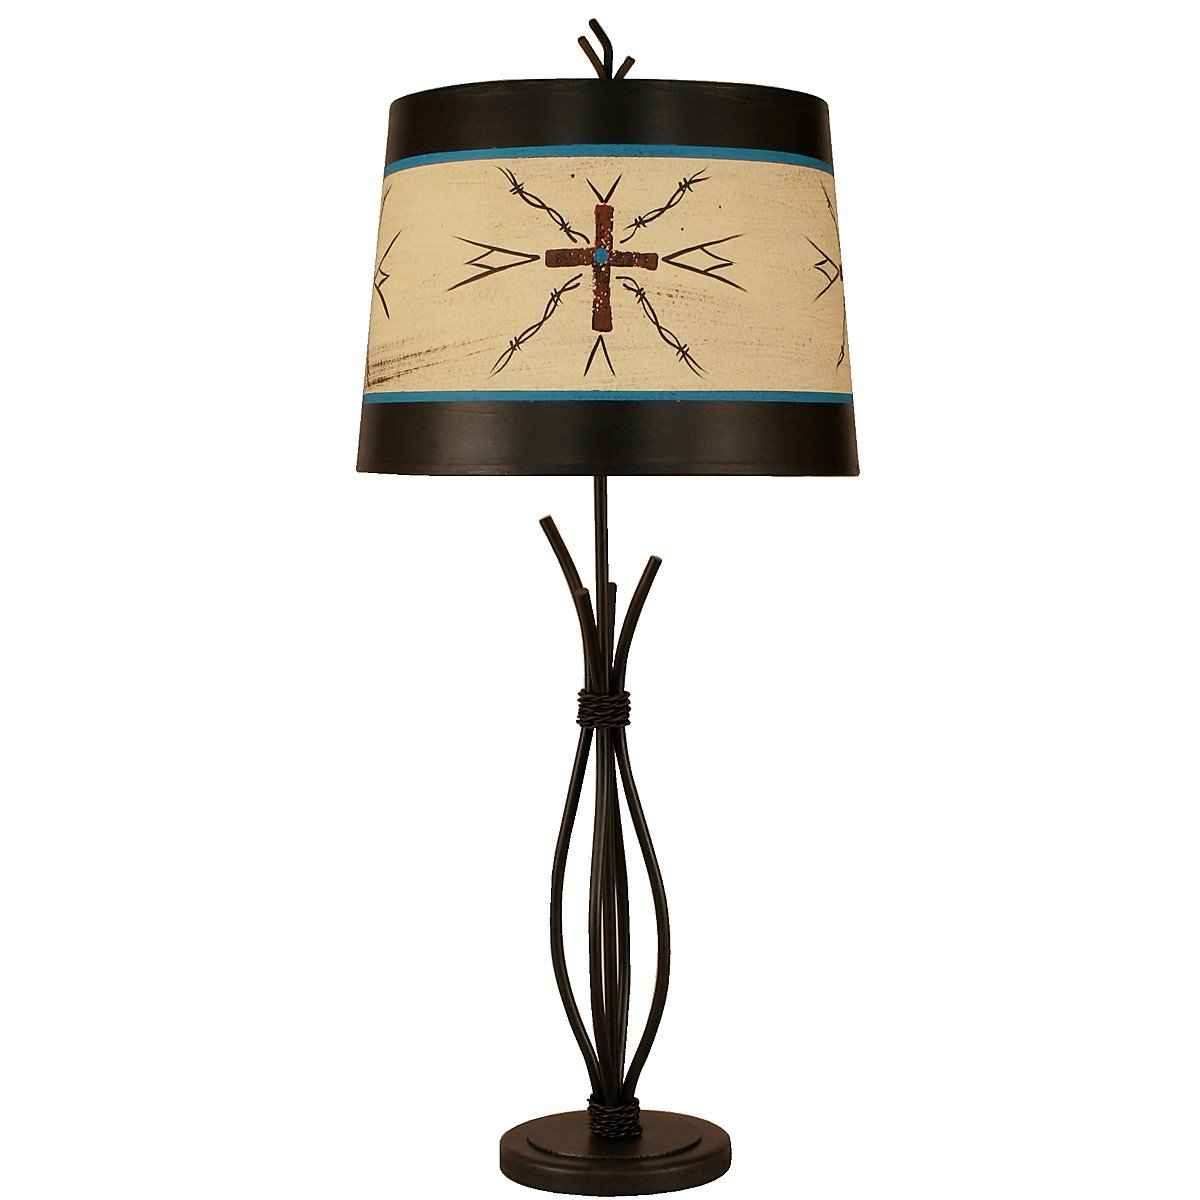 Western table lamps - Table And Floor Lamp Made In The Usa Https Www Yourwesterndecor Com Product Category Lighting Rustic Table Lamps Lighting Page 2 Pic Twitter Com